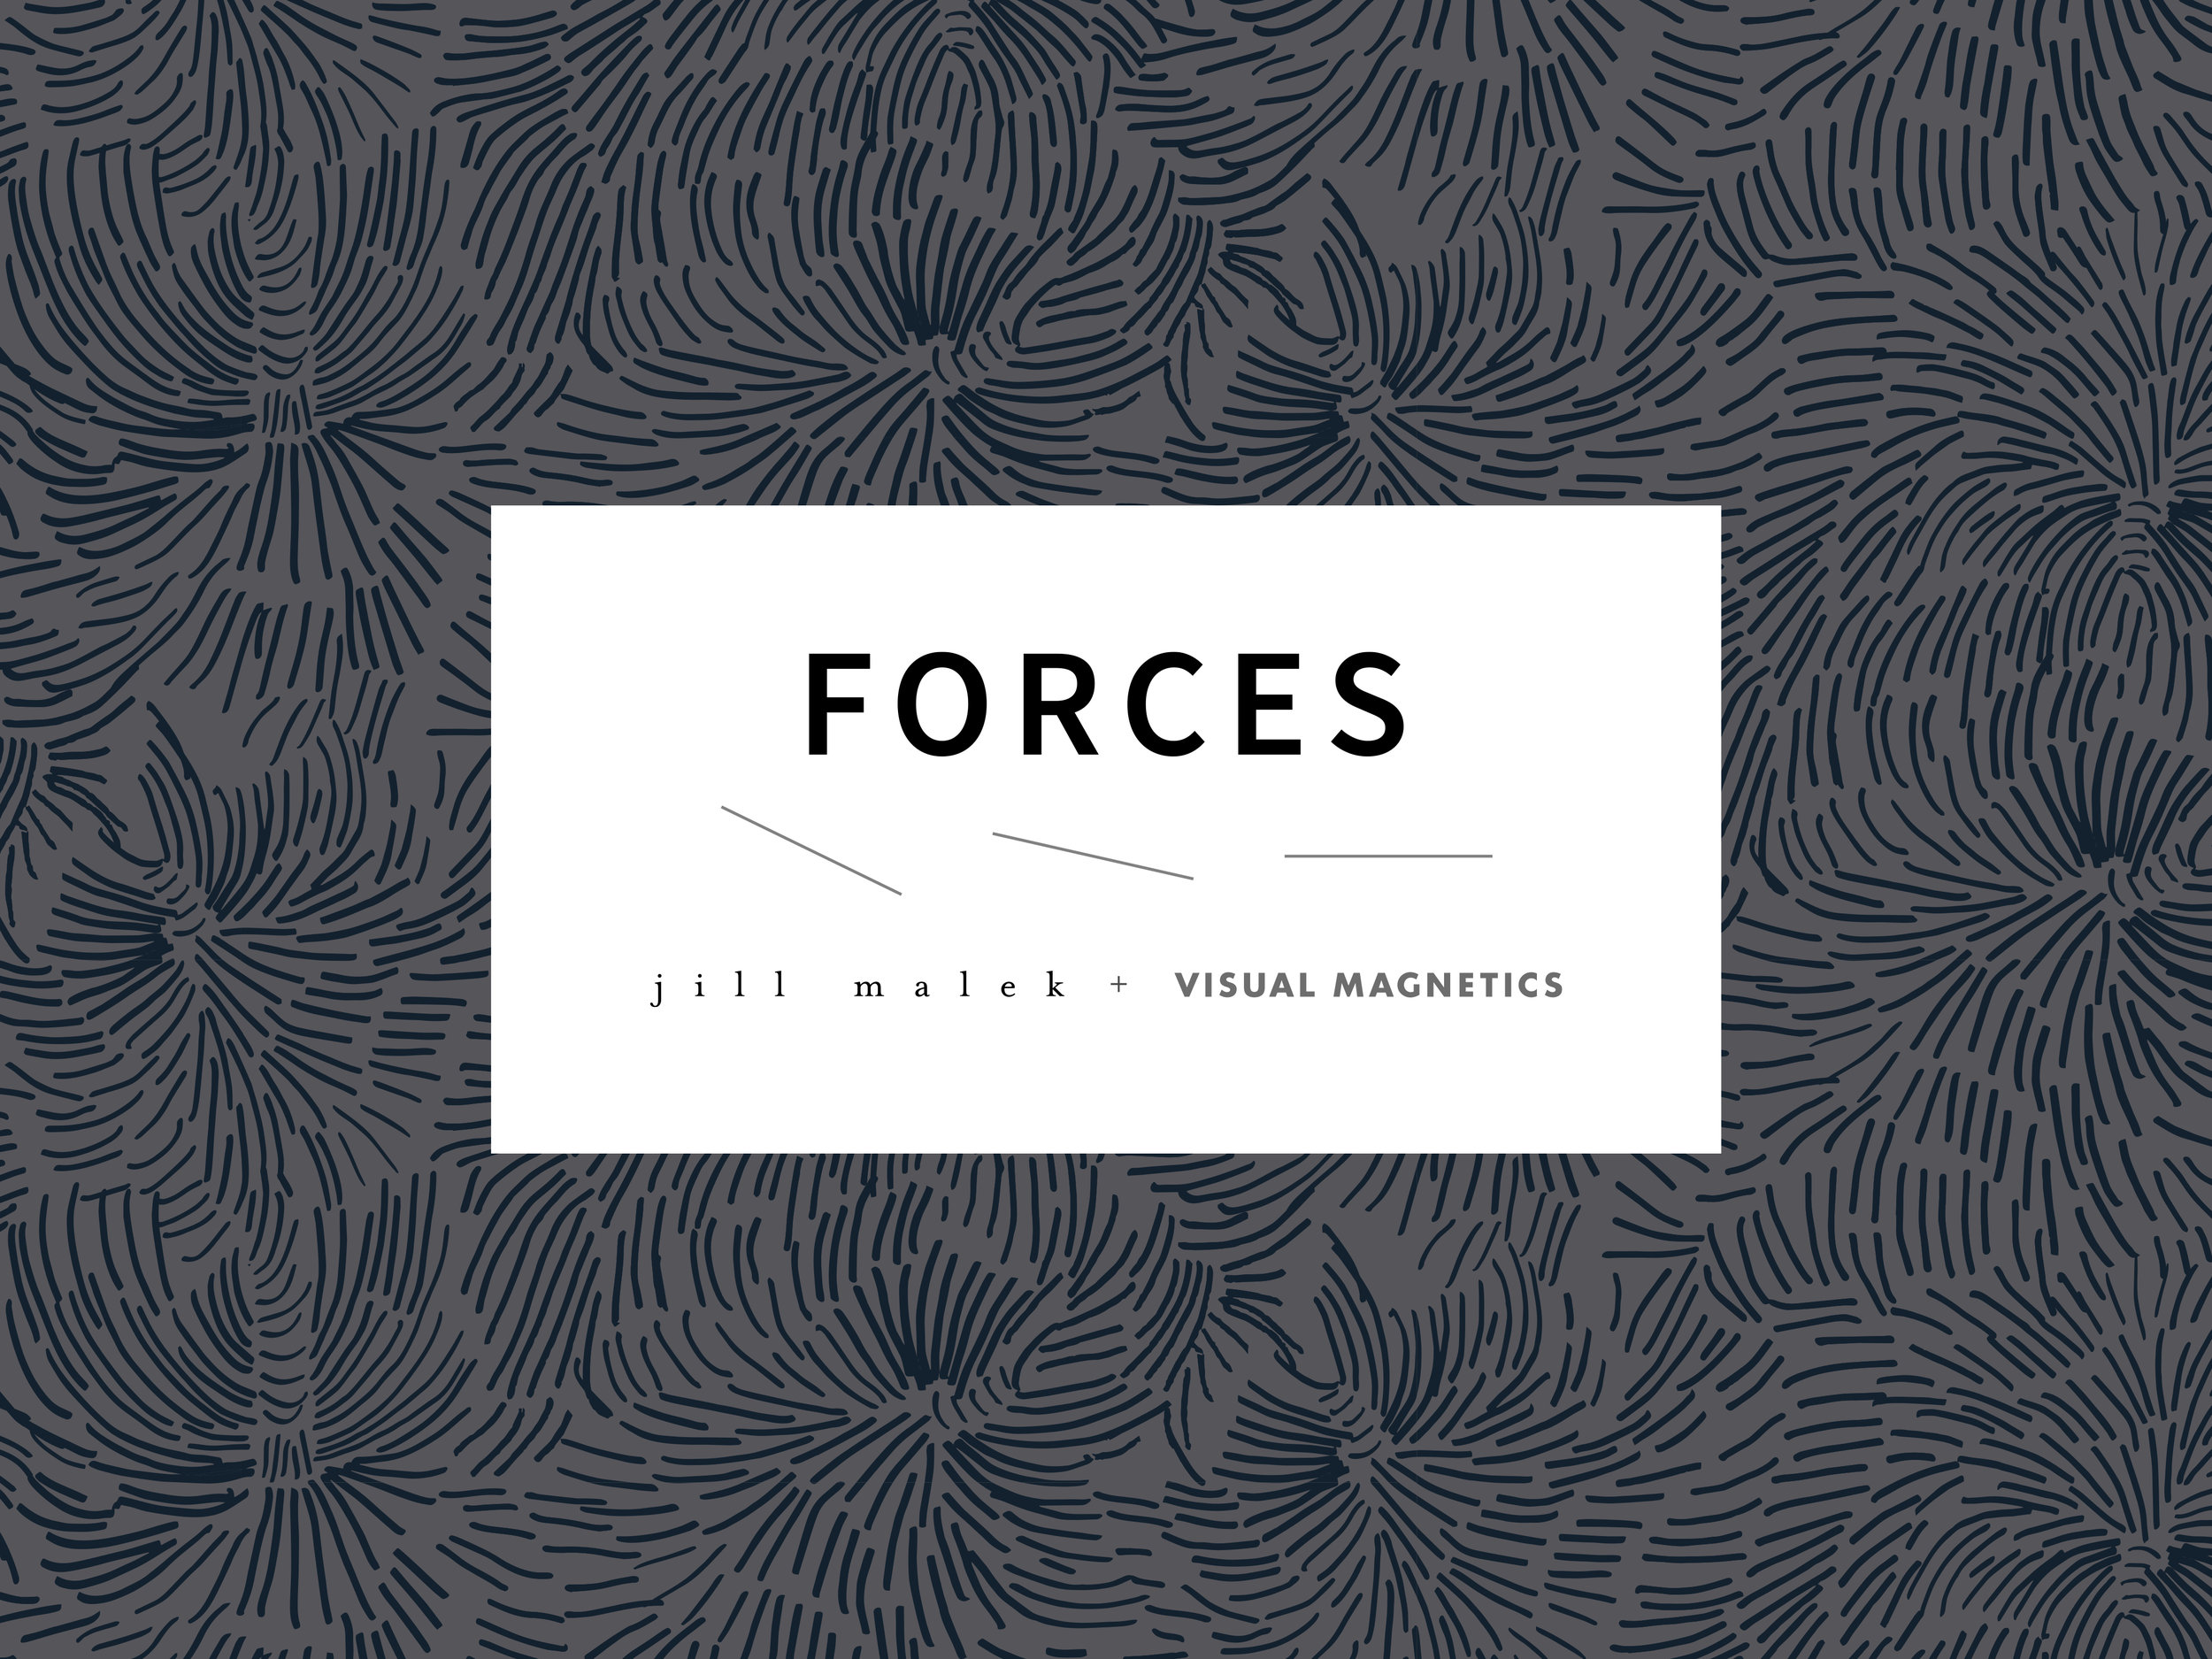 Forces Lookbook cover.jpg